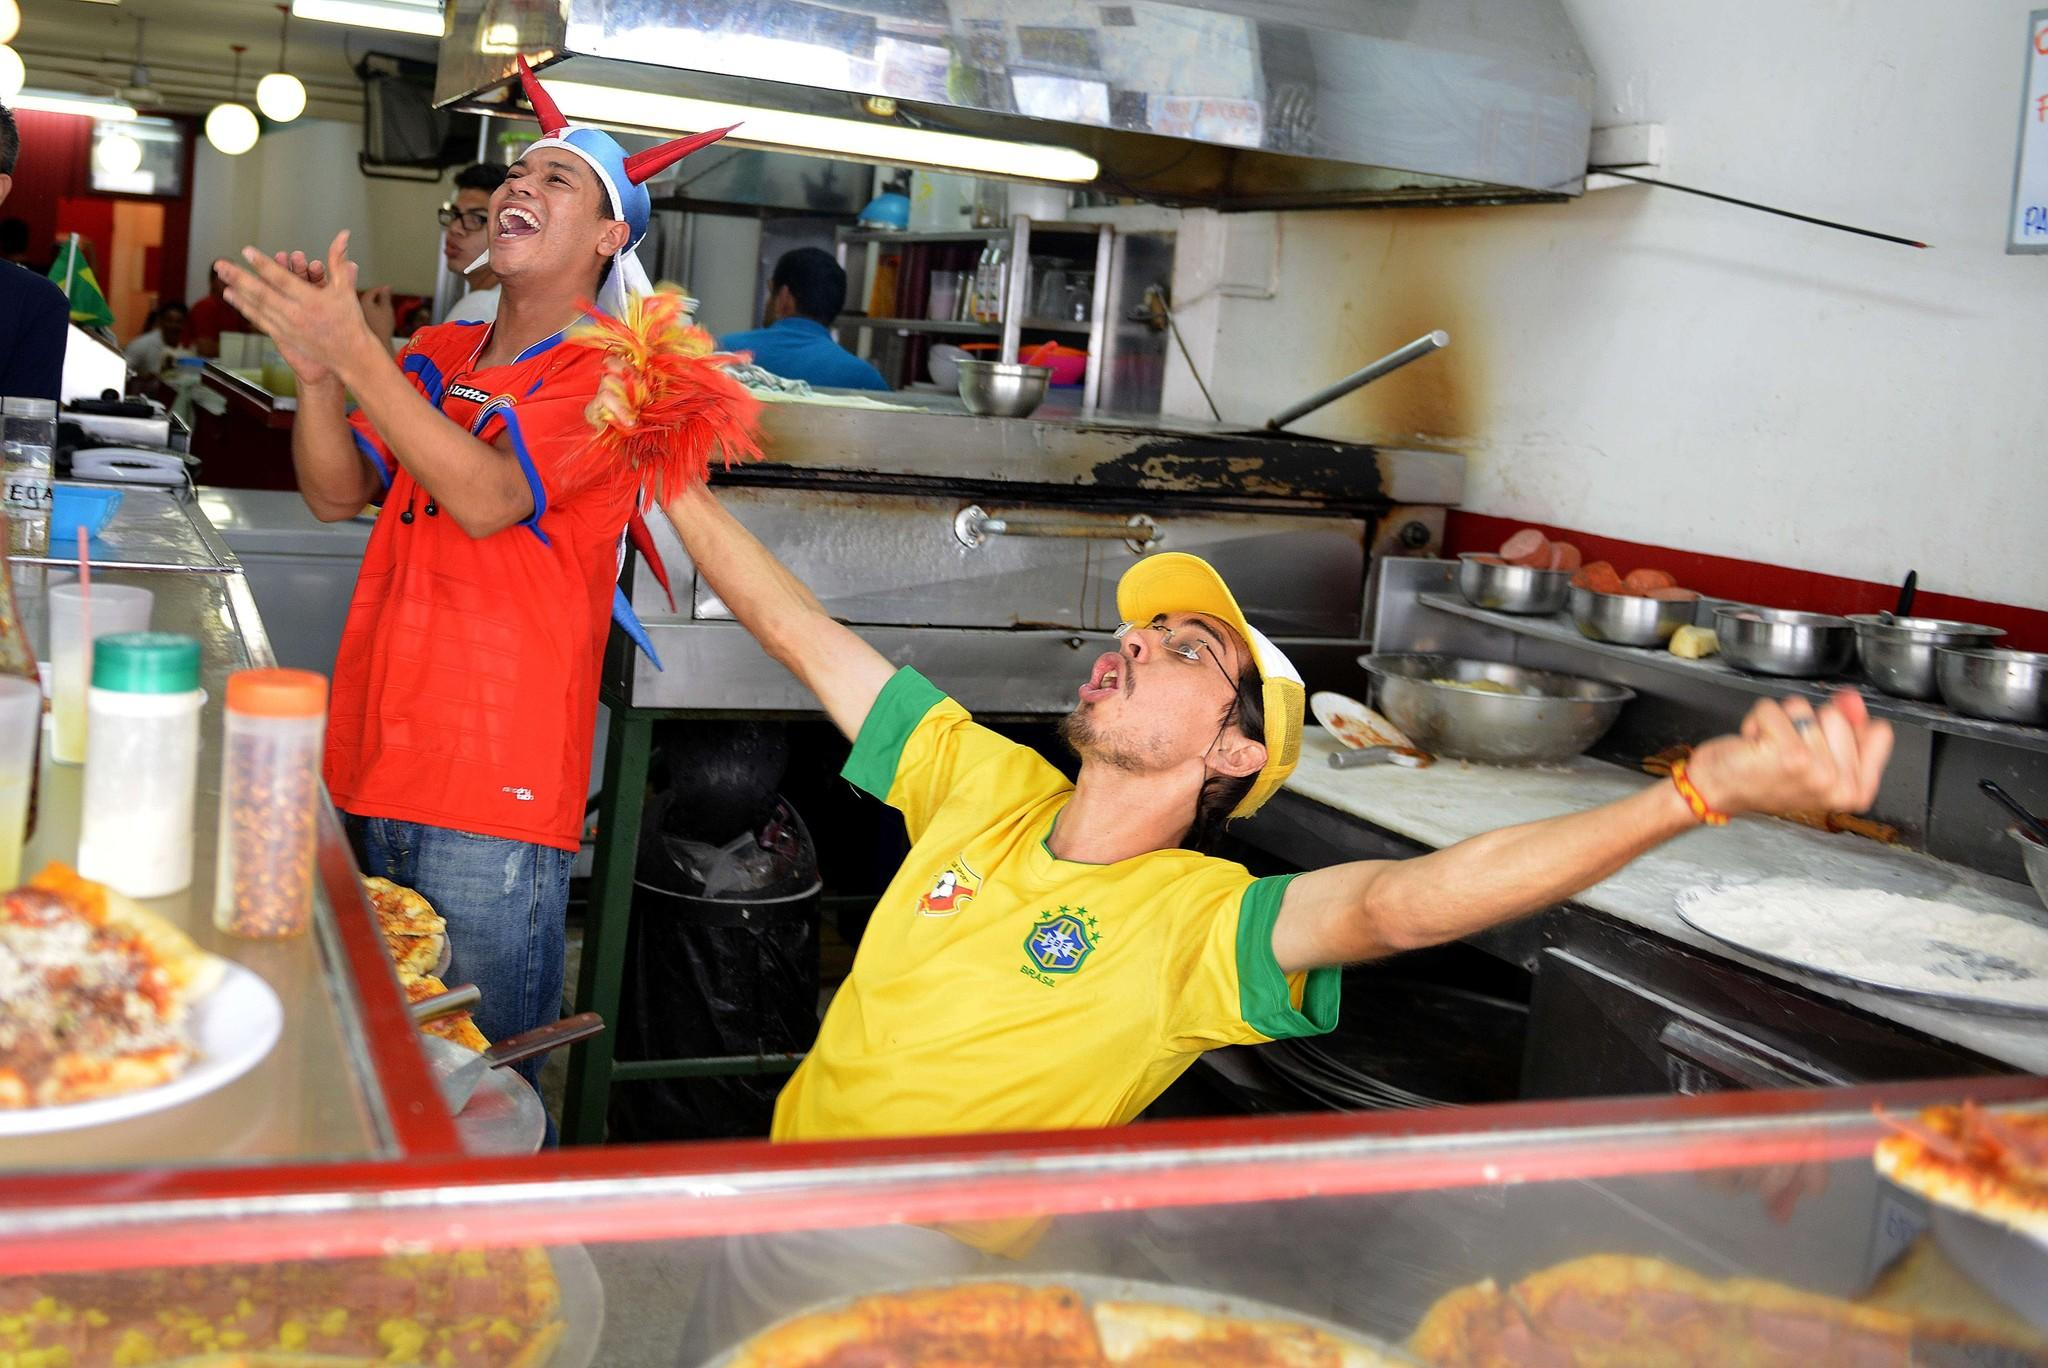 Workers at a pizza store in San Jose celebrate Costa Rica's goal against Uruguay in the World Cup.